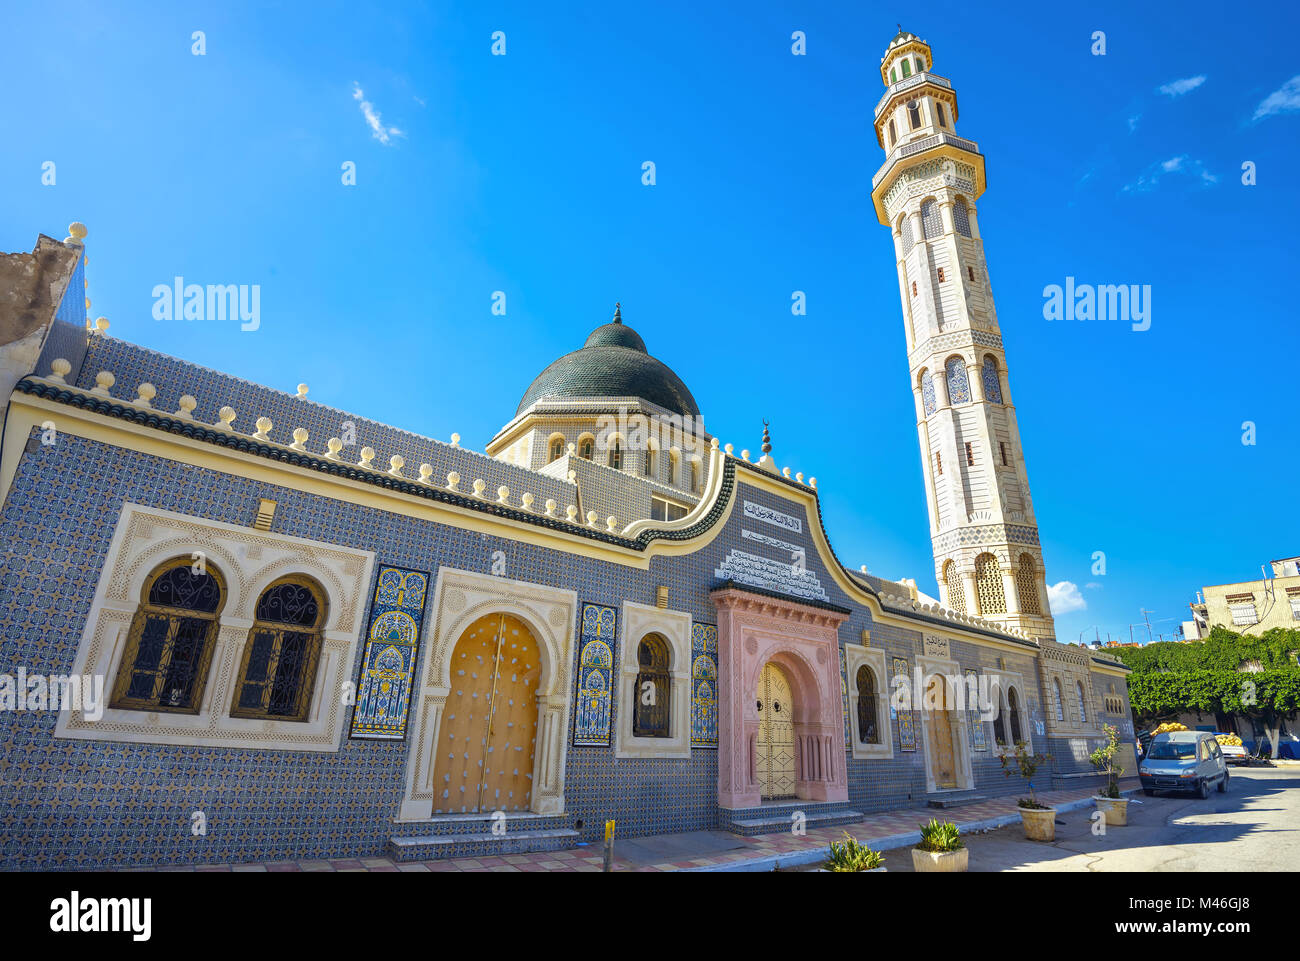 Facade and tall minaret tower of mosque in Nabeul. Tunisia, North Africa - Stock Image